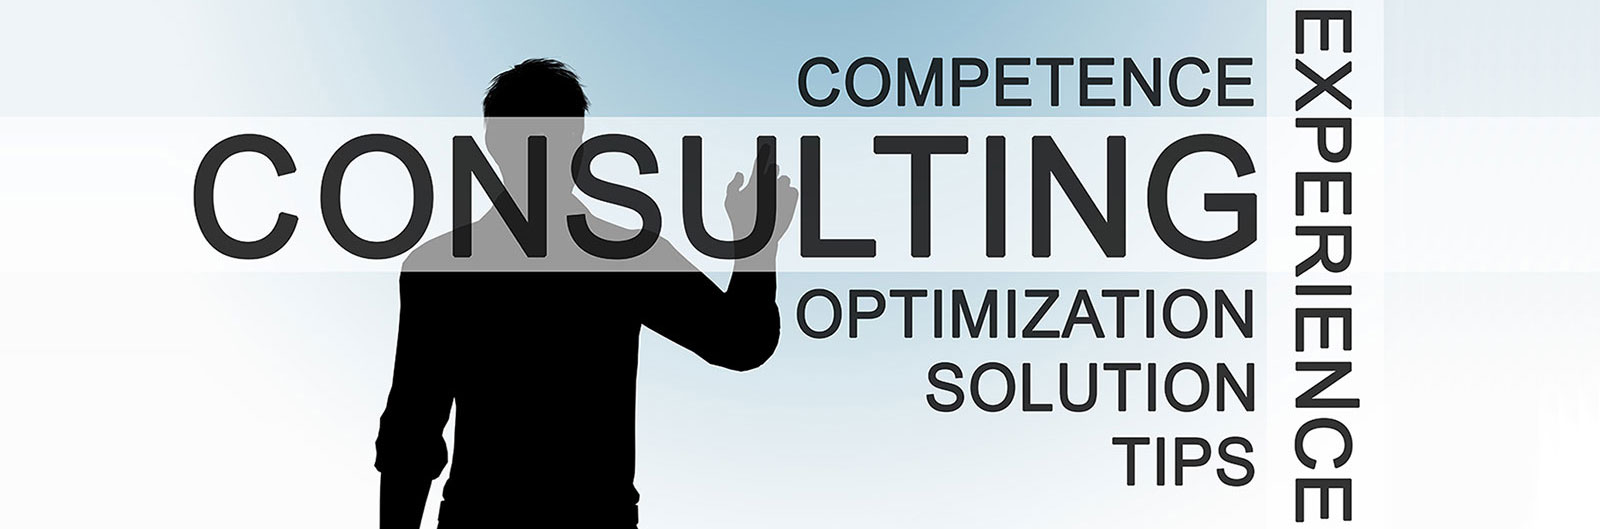 slide with a man with a silhouette and text about consulting experience.